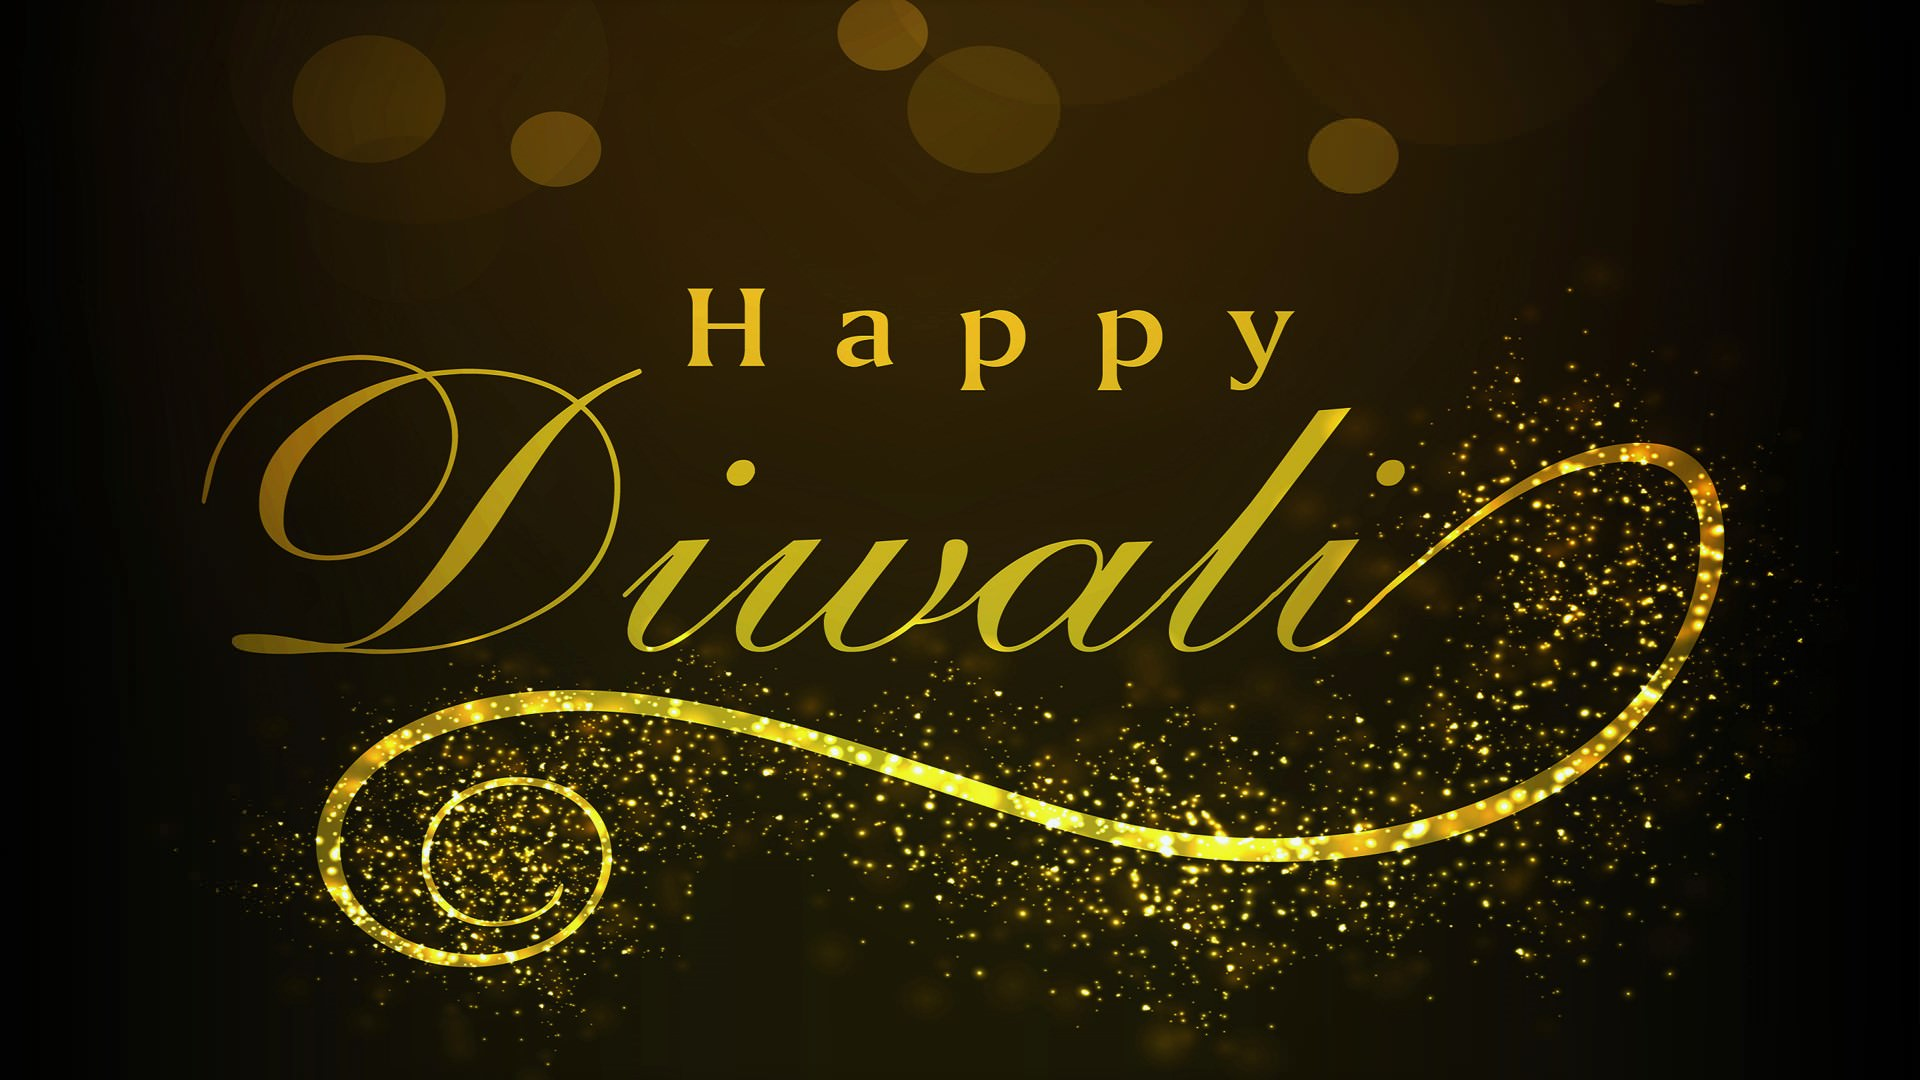 Happy Diwali Dear Friends